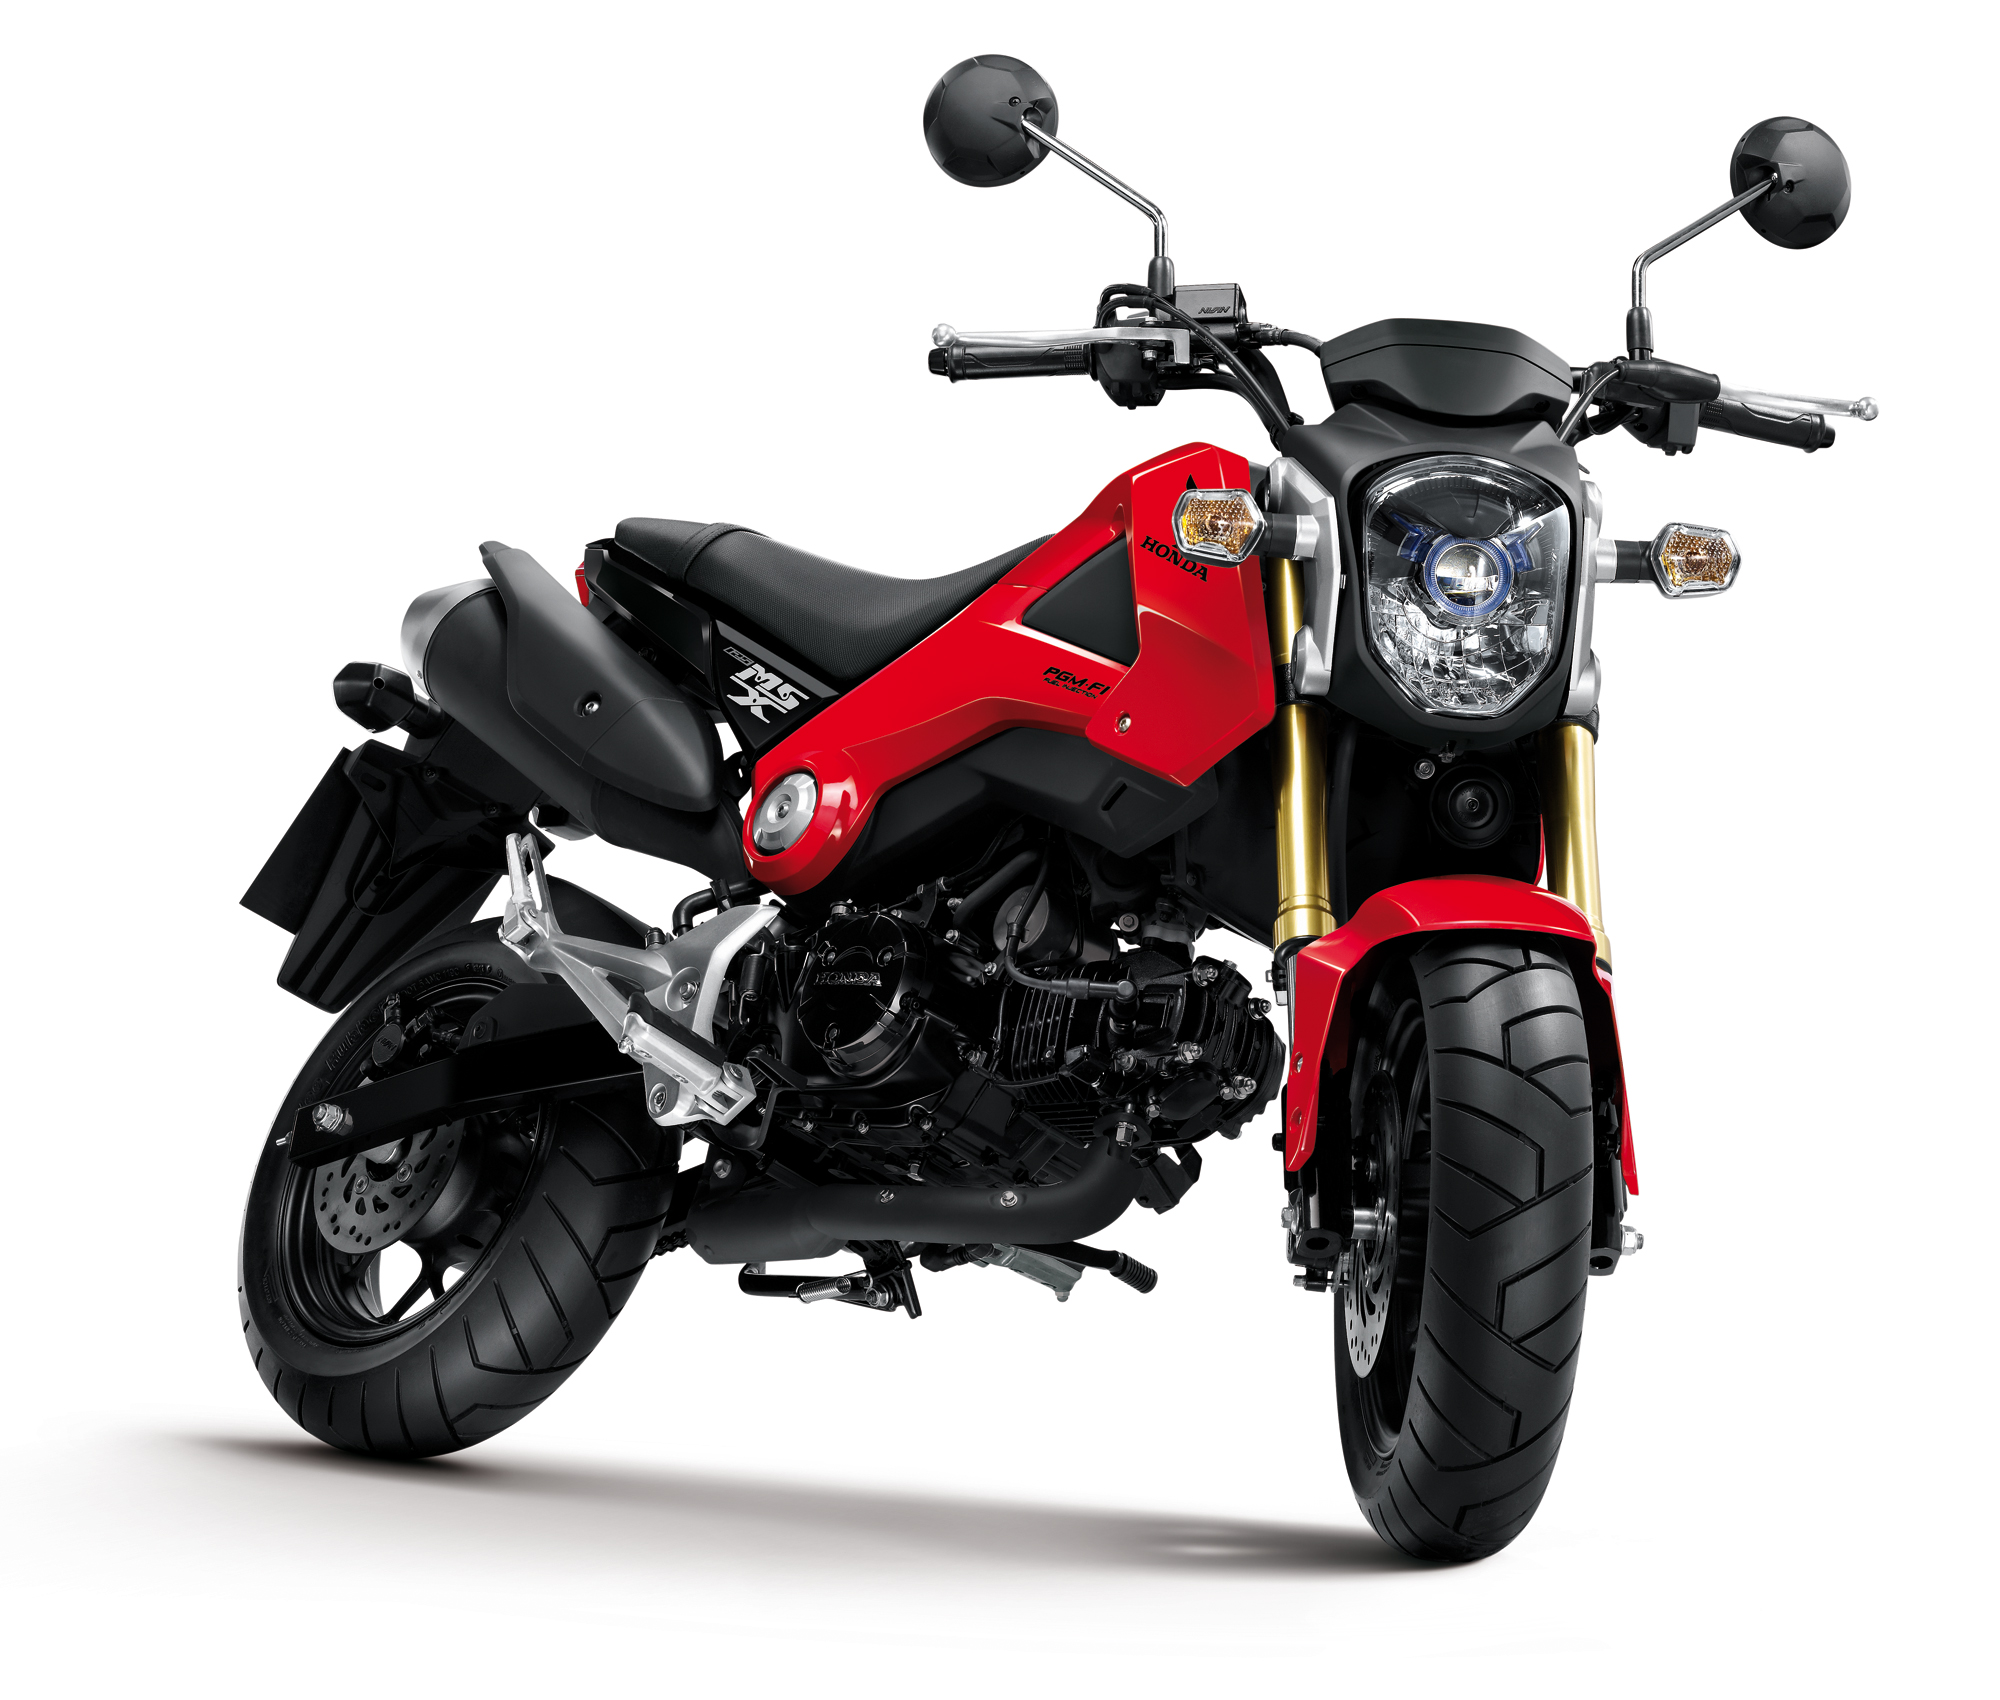 Honda MSX125 - new Monkey is made in Thailand